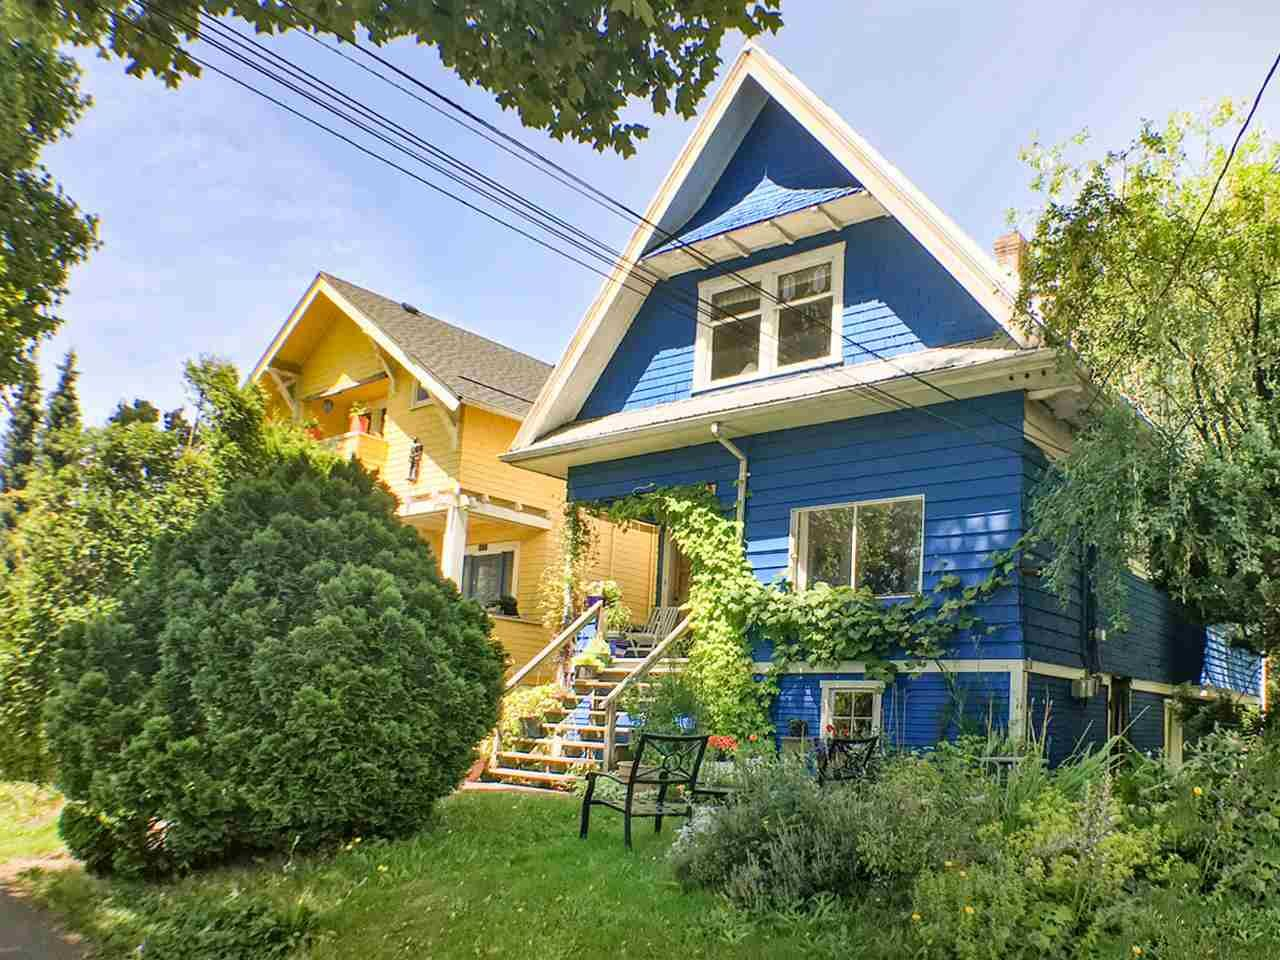 Main Photo: 809 E 24TH Avenue in Vancouver: Fraser VE House for sale (Vancouver East)  : MLS®# R2482539